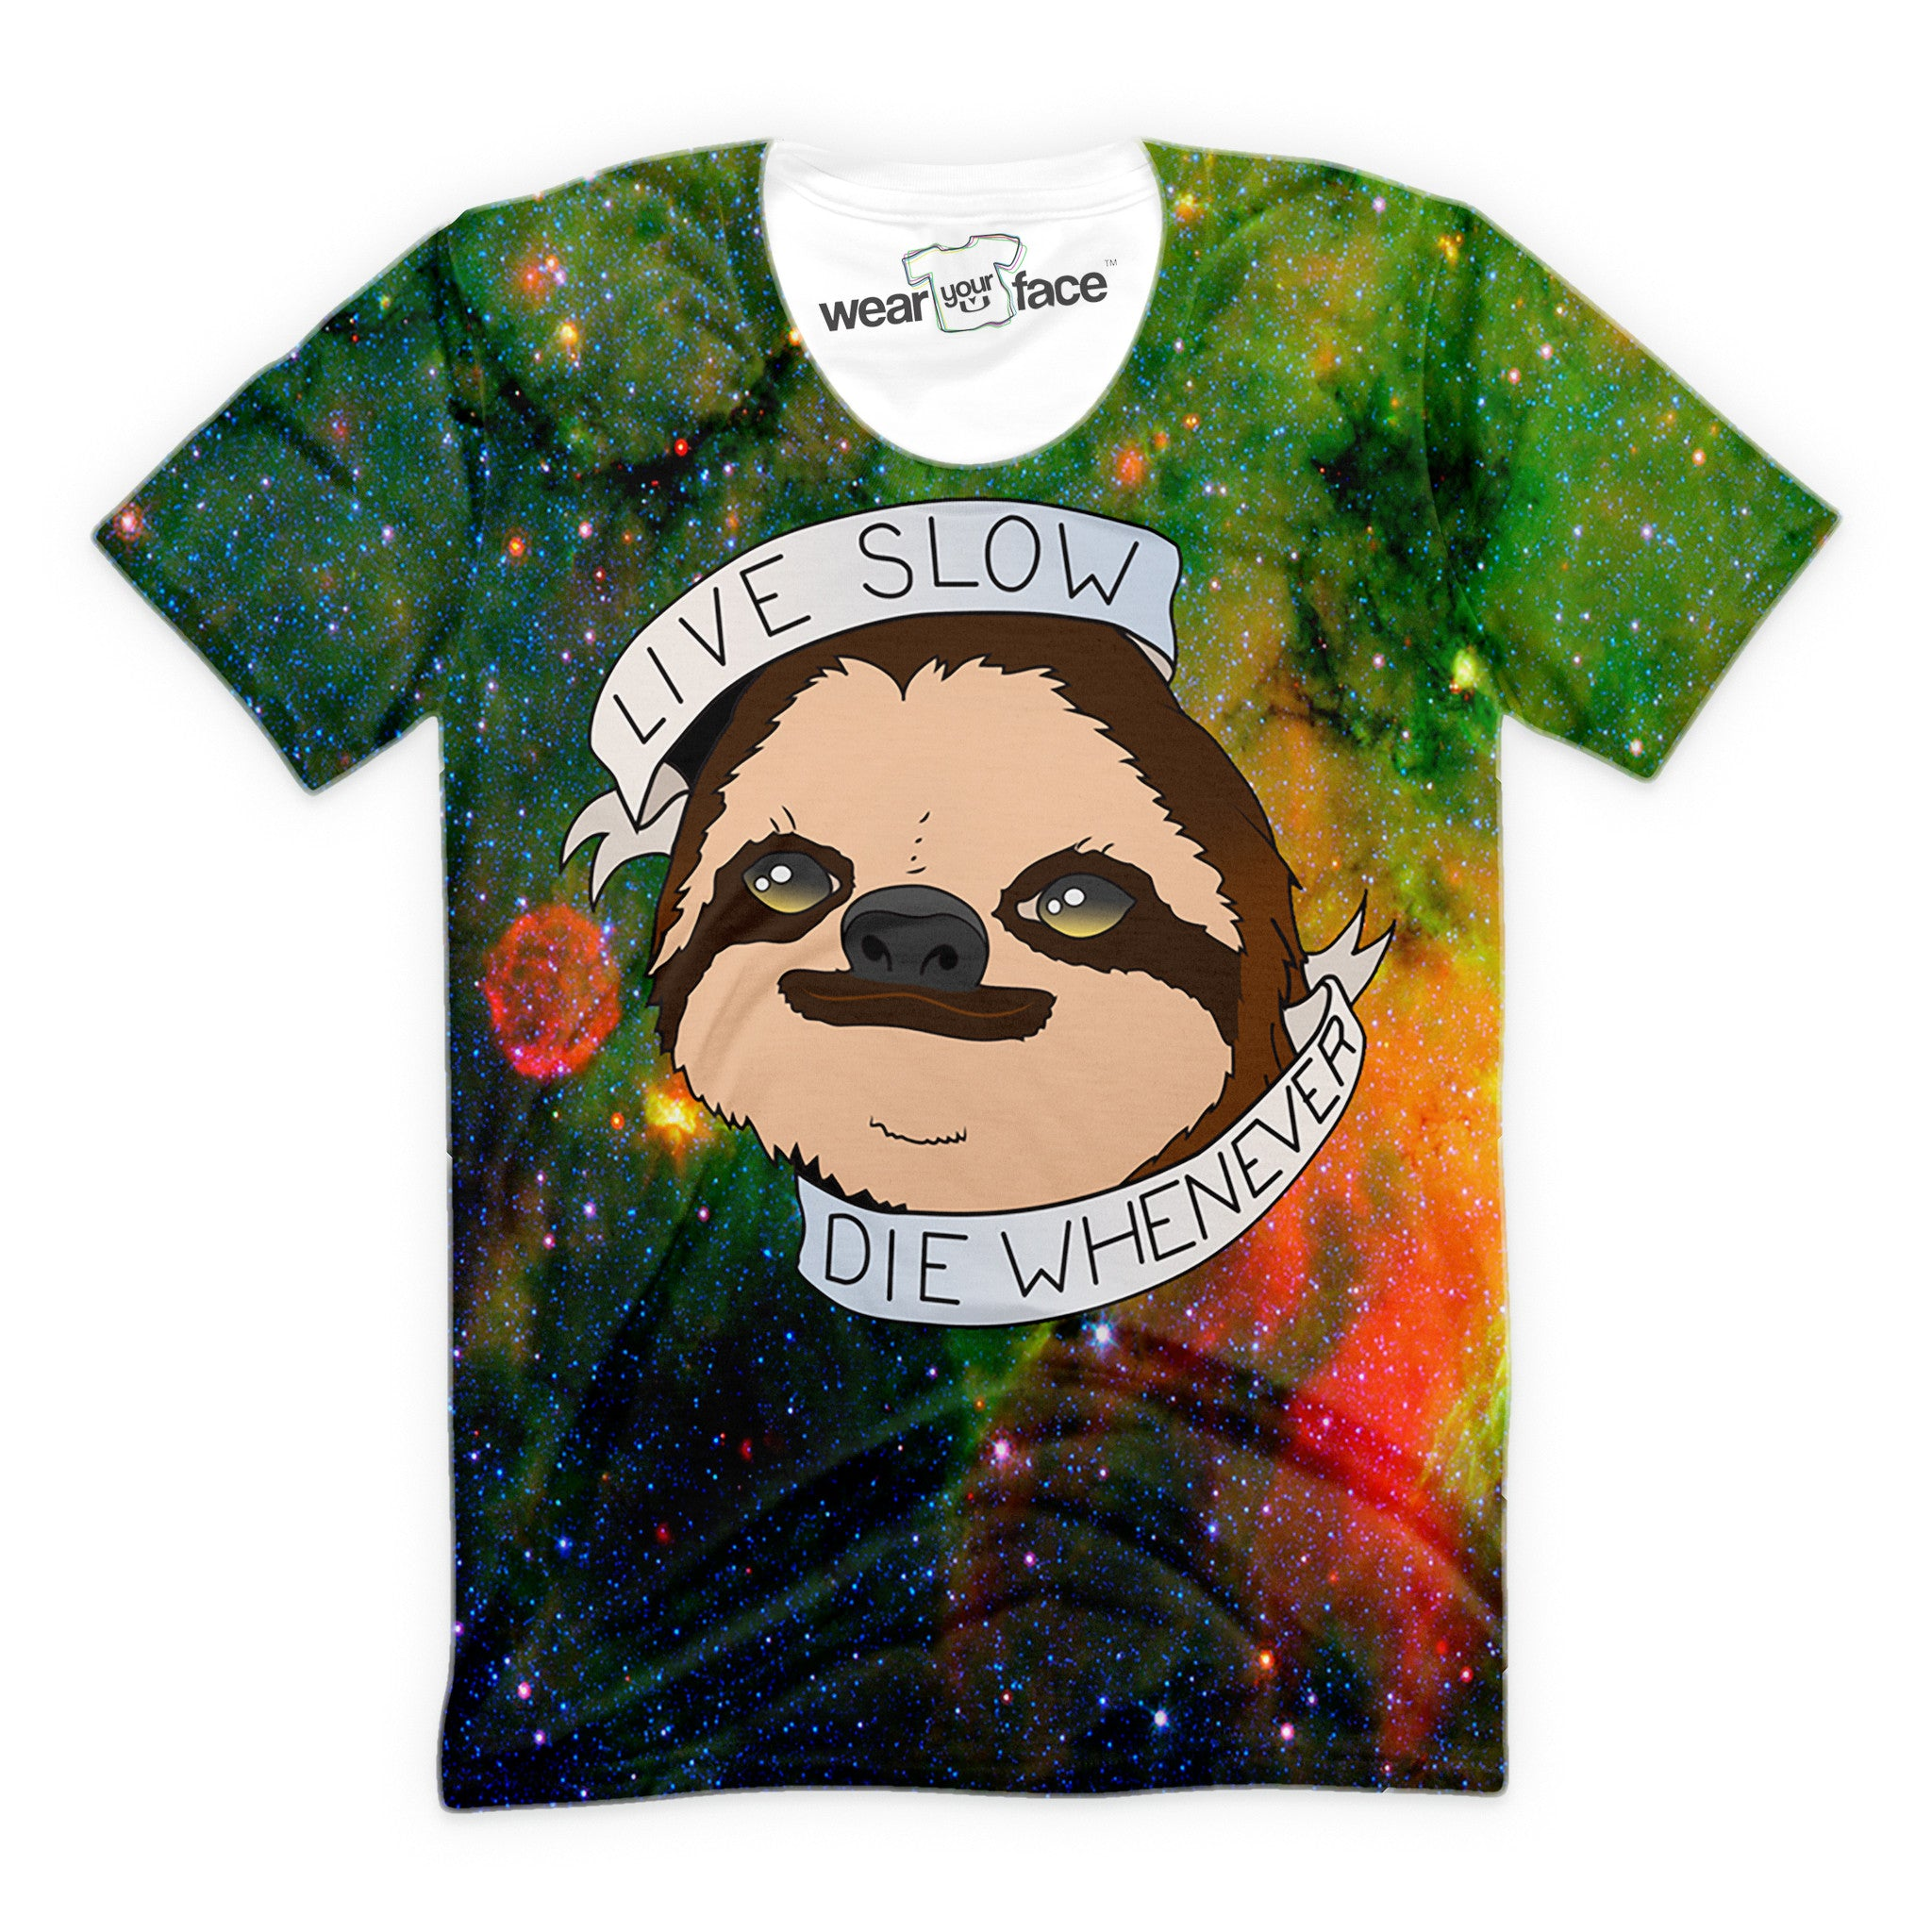 Live Slow, Die Whenever Sloth T-Shirt